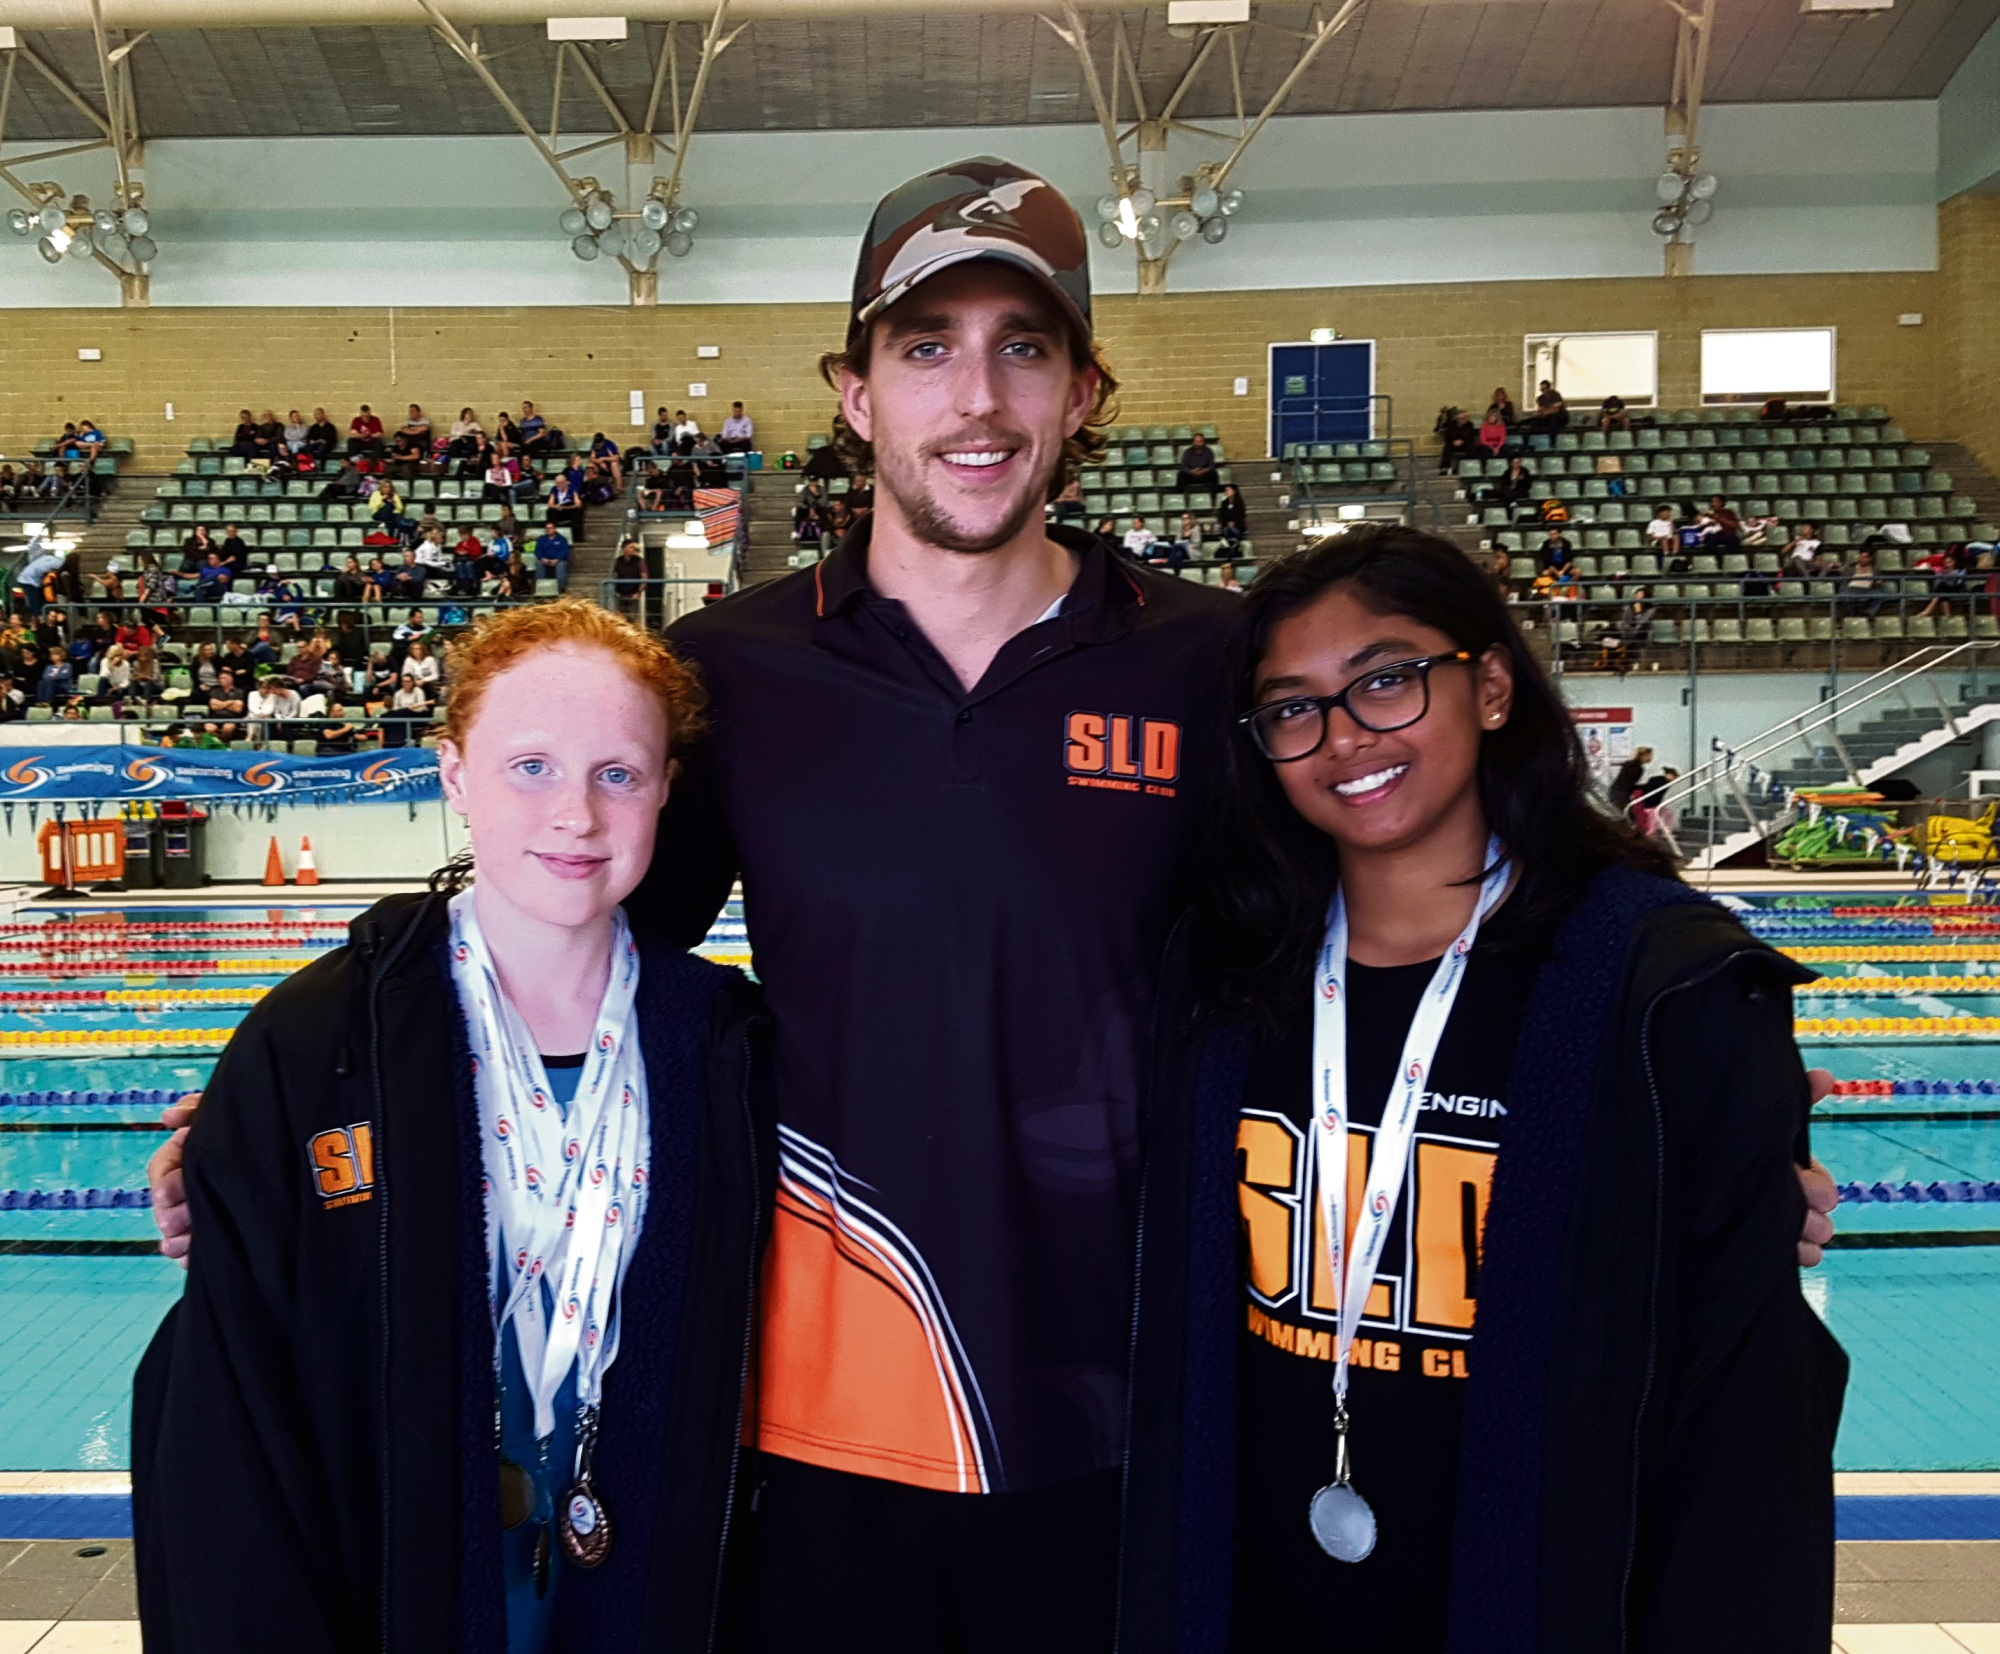 Kate Wallington, Coach Dorian Gandin and Aakashi Ranaweera at the Junior Short Course Championships.